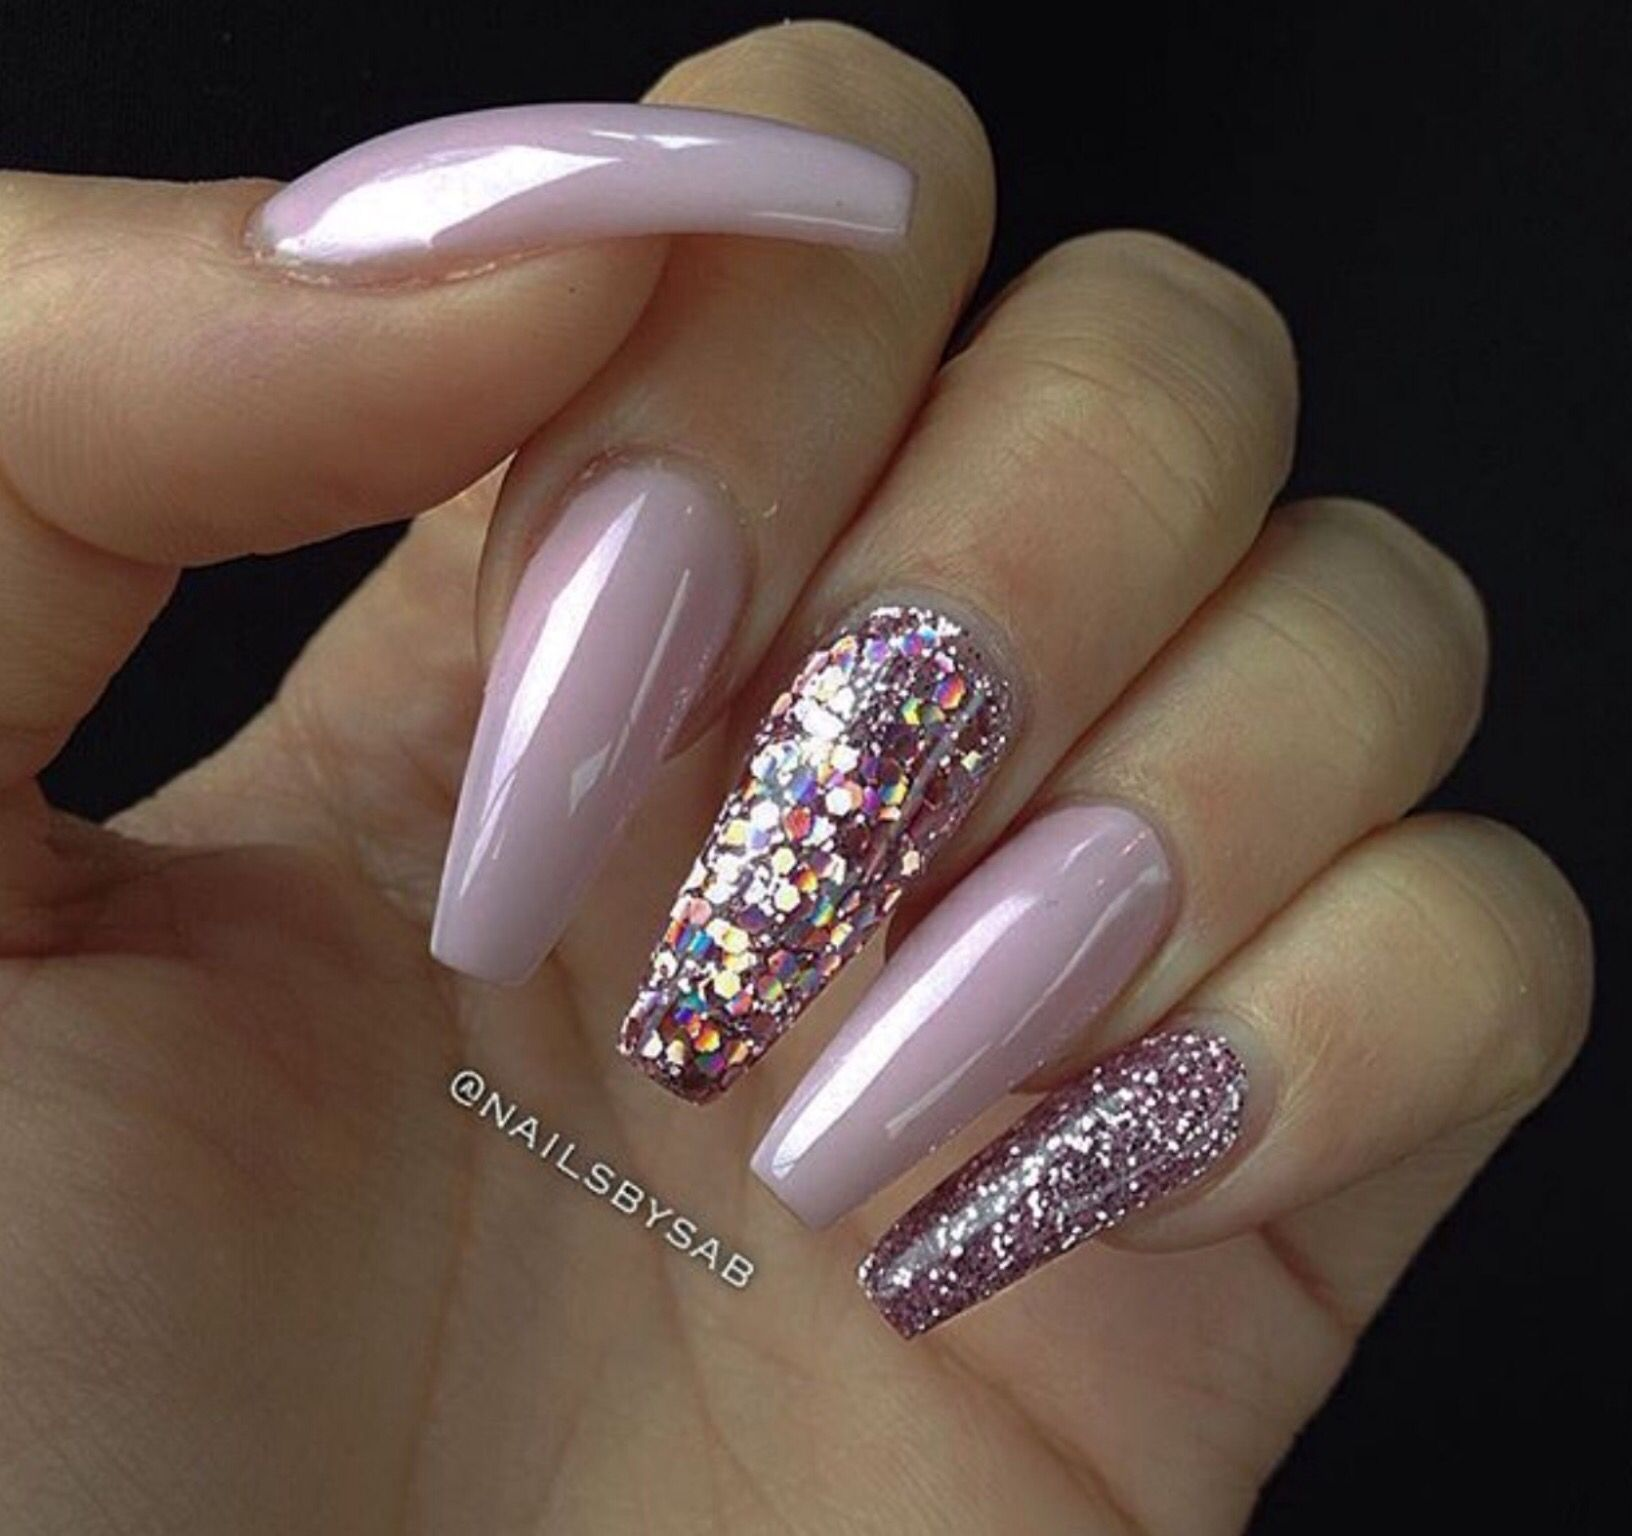 Pin von Monique Strohl auf nail designs | Pinterest | Nagelschere ...